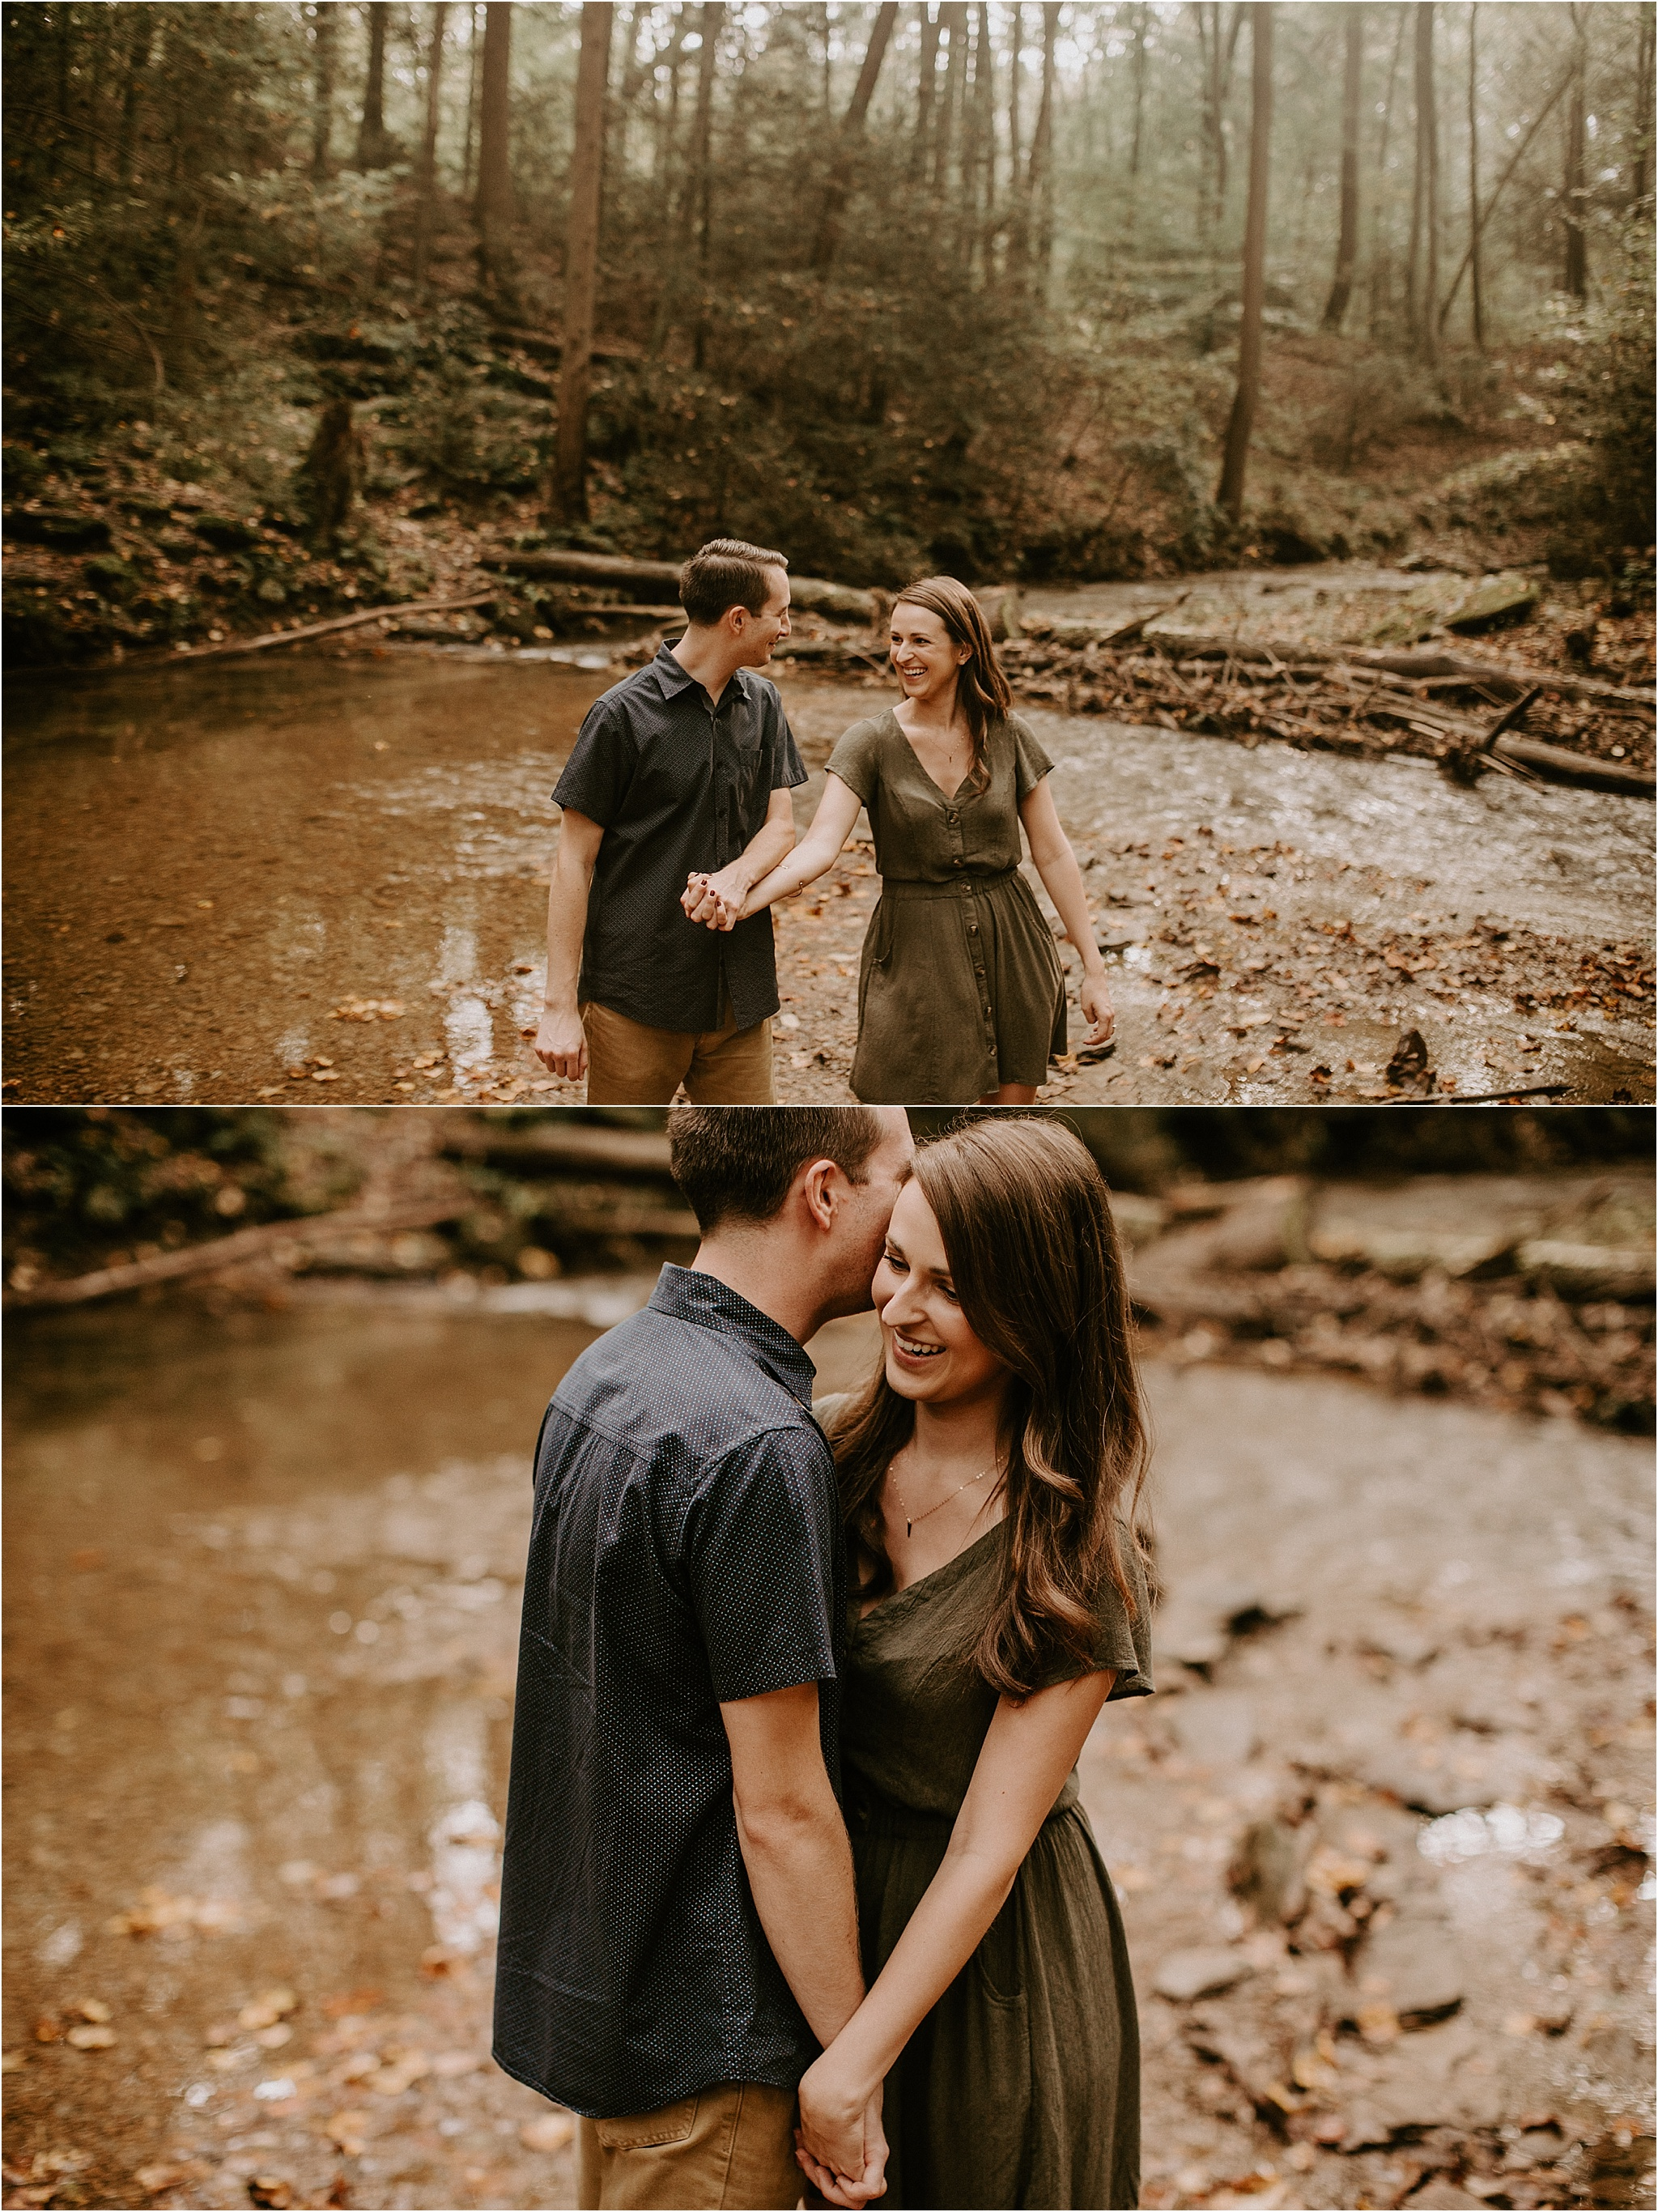 Sarah_Brookhart_Lancaster_PA_Engagement_Photographer_0002.jpg